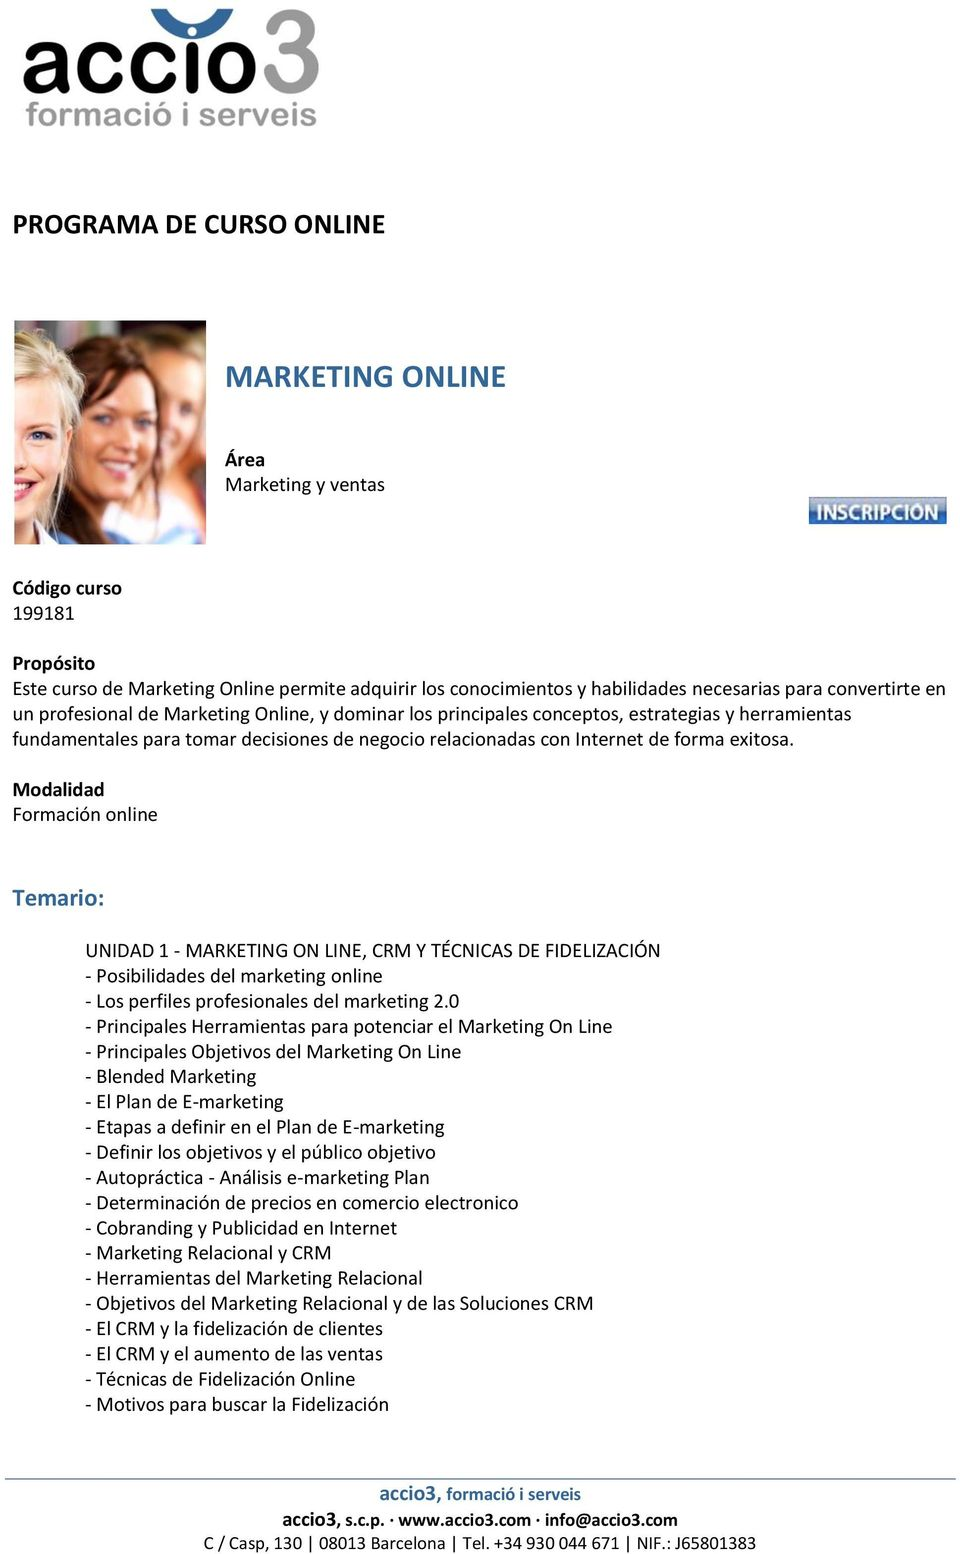 exitosa. Modalidad Formación online Temario: UNIDAD 1 - MARKETING ON LINE, CRM Y TÉCNICAS DE FIDELIZACIÓN - Posibilidades del marketing online - Los perfiles profesionales del marketing 2.